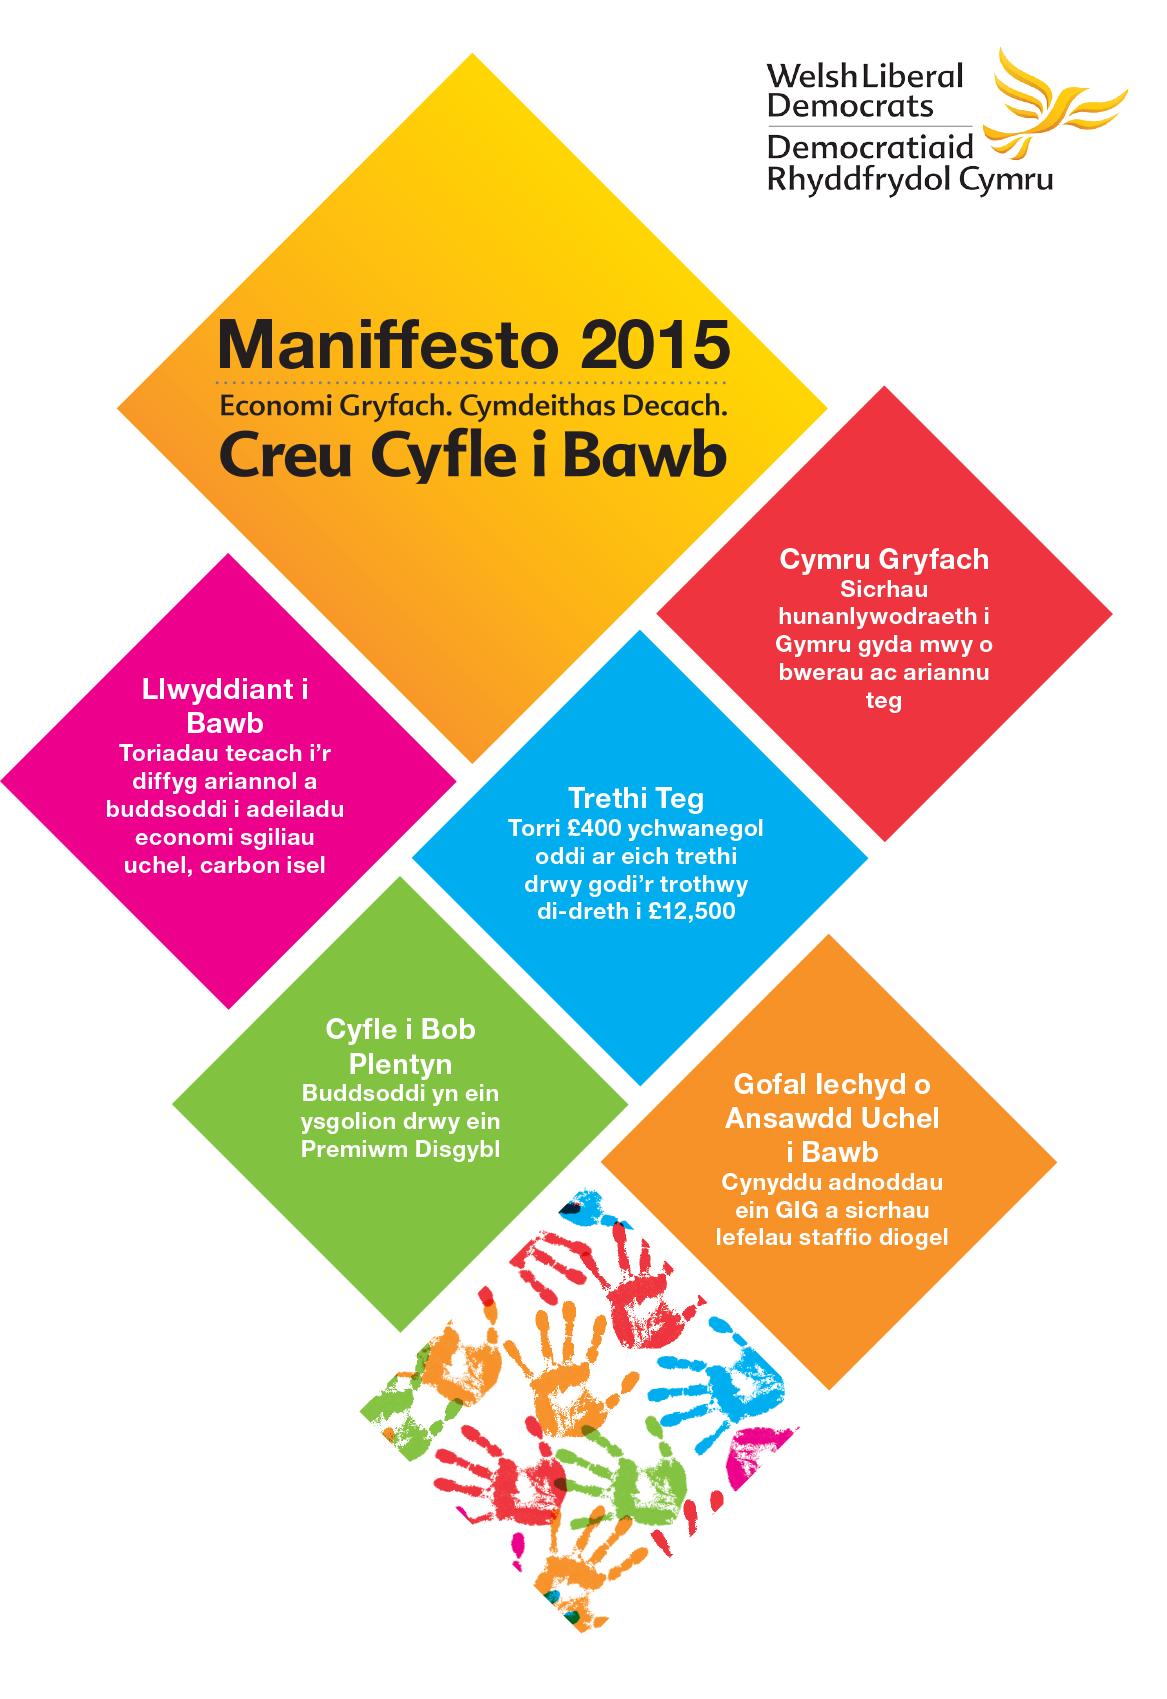 Welsh_Manifesto_Covers_2015_Hi_Resv5-2.png